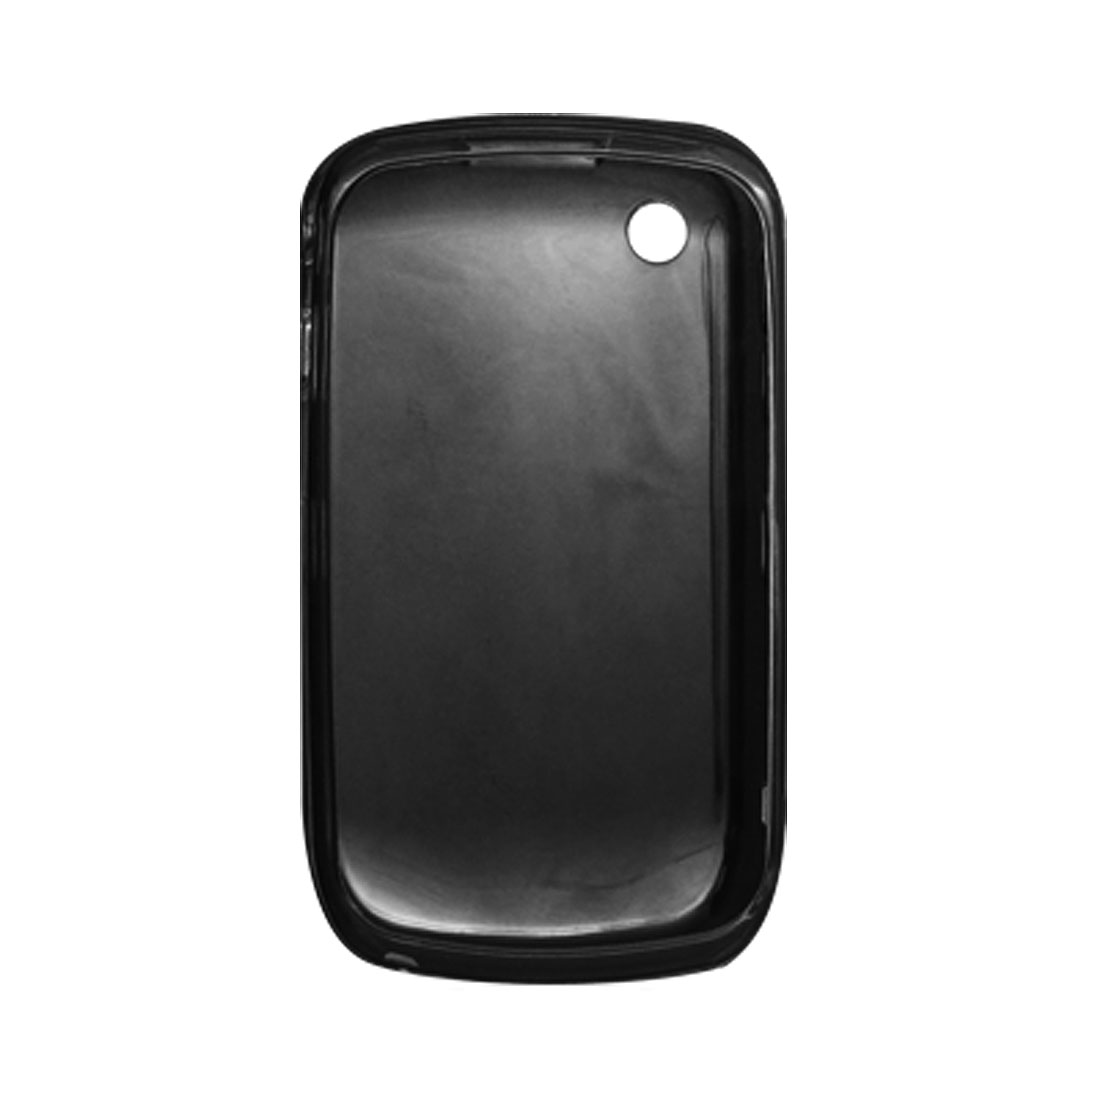 Black Soft Plastic Cover Case Phone Shell for Blackberry 8520